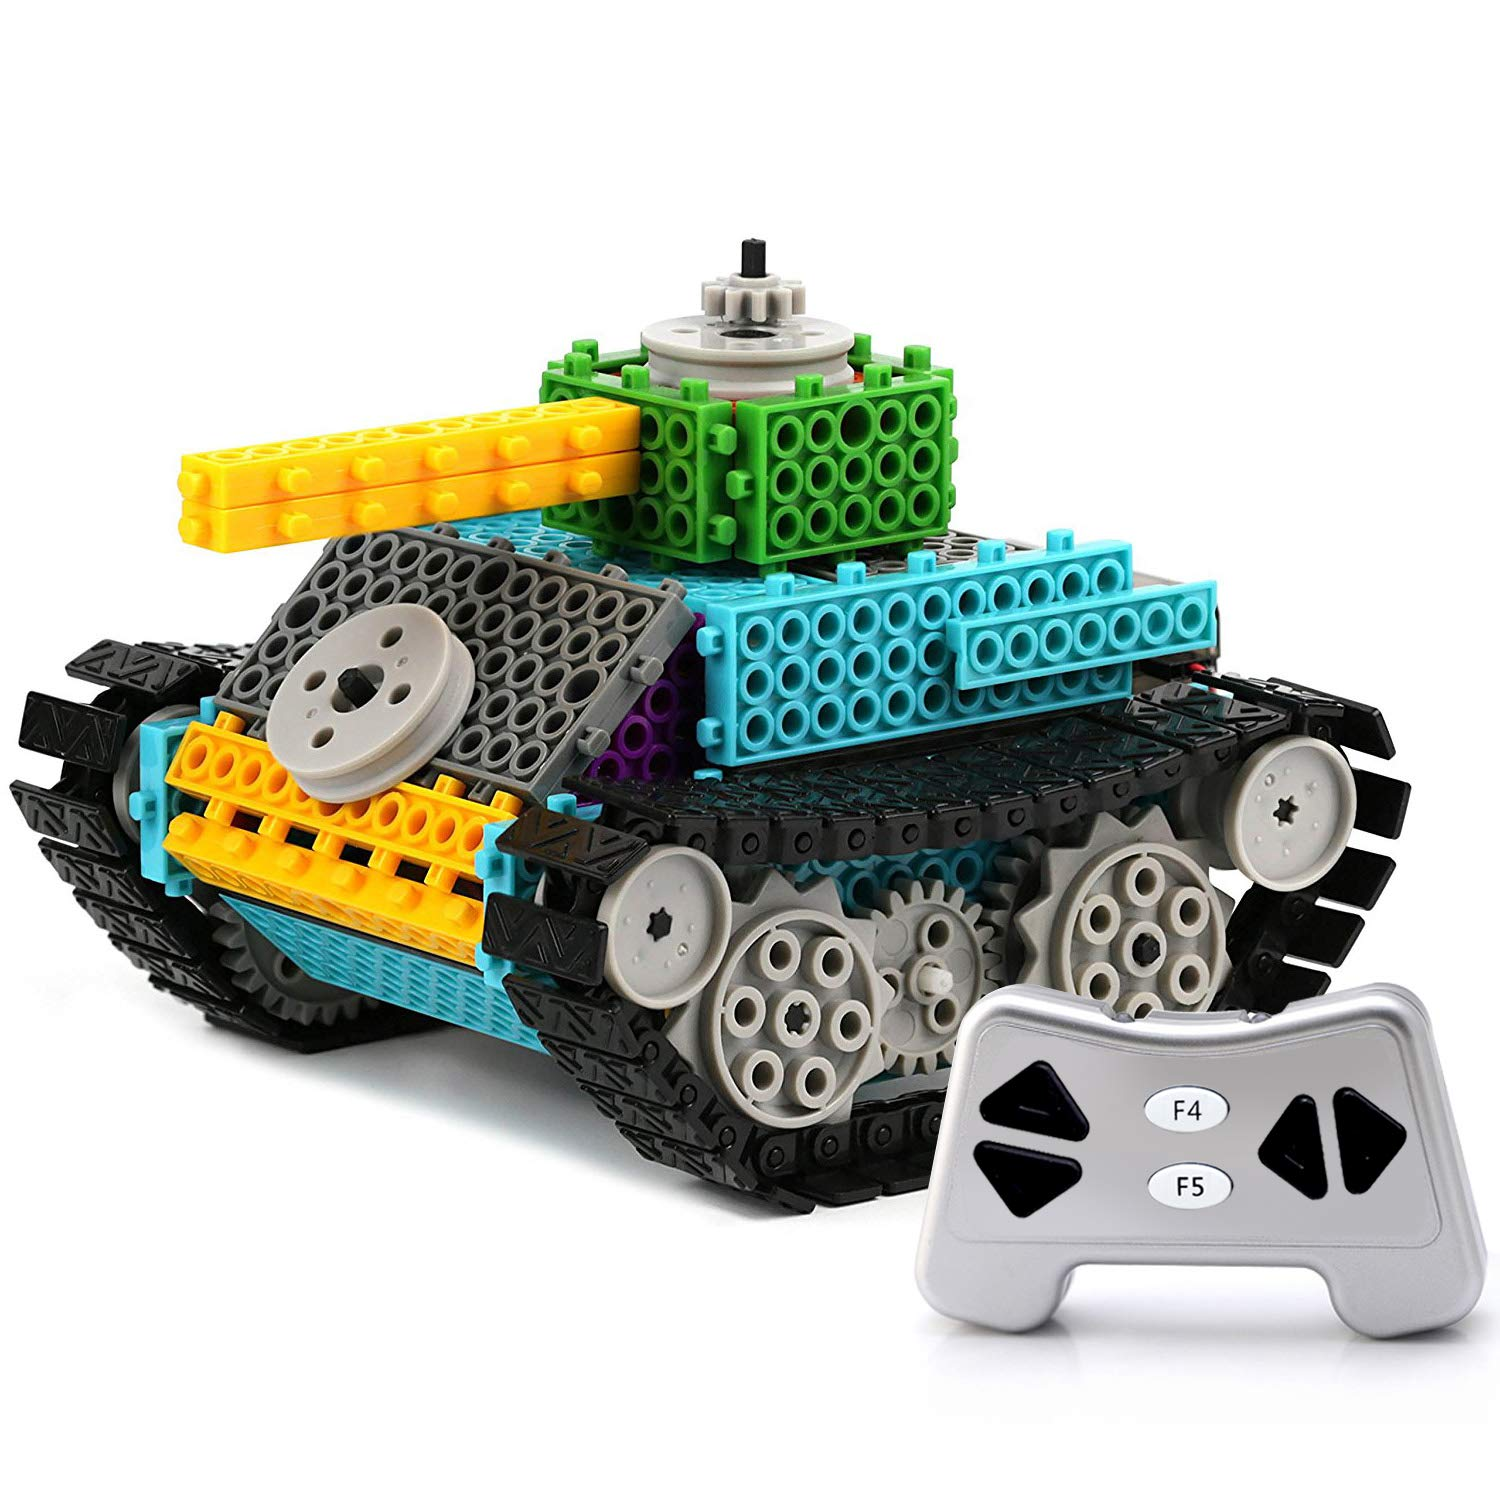 PACKGOUT STEM Toys Gifts for Boy Teen Remote Control Building Kits for Boy Girl Teen Gift 5/6/7 Year Old Boy Gifts Build Own Gift